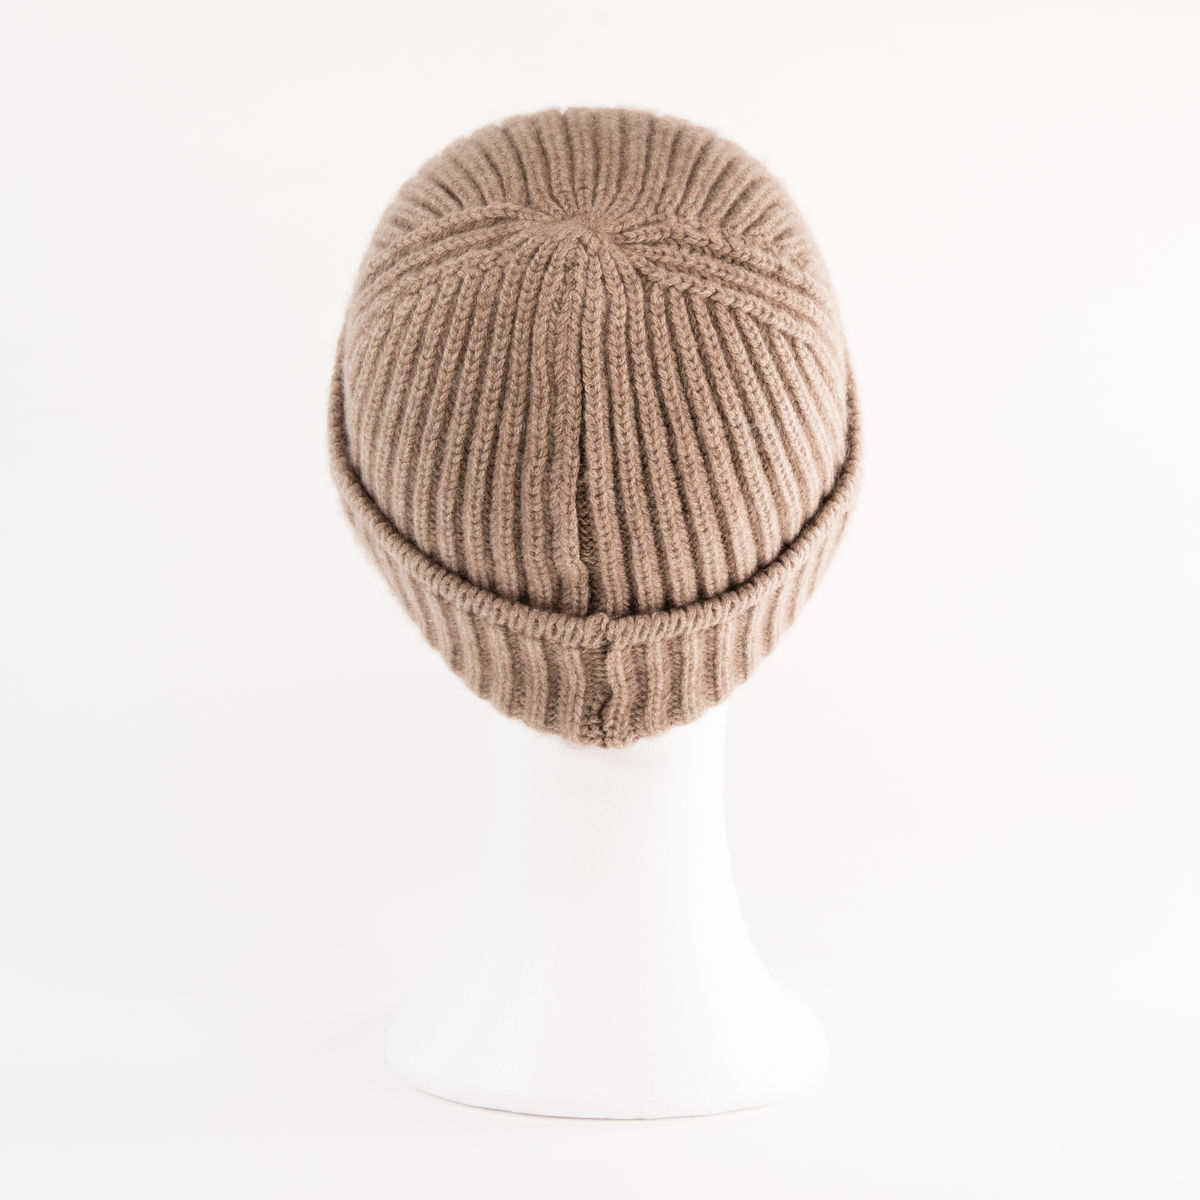 Classic Ribbed Beanie Cuff - MEDIUM BROWN - product images  of